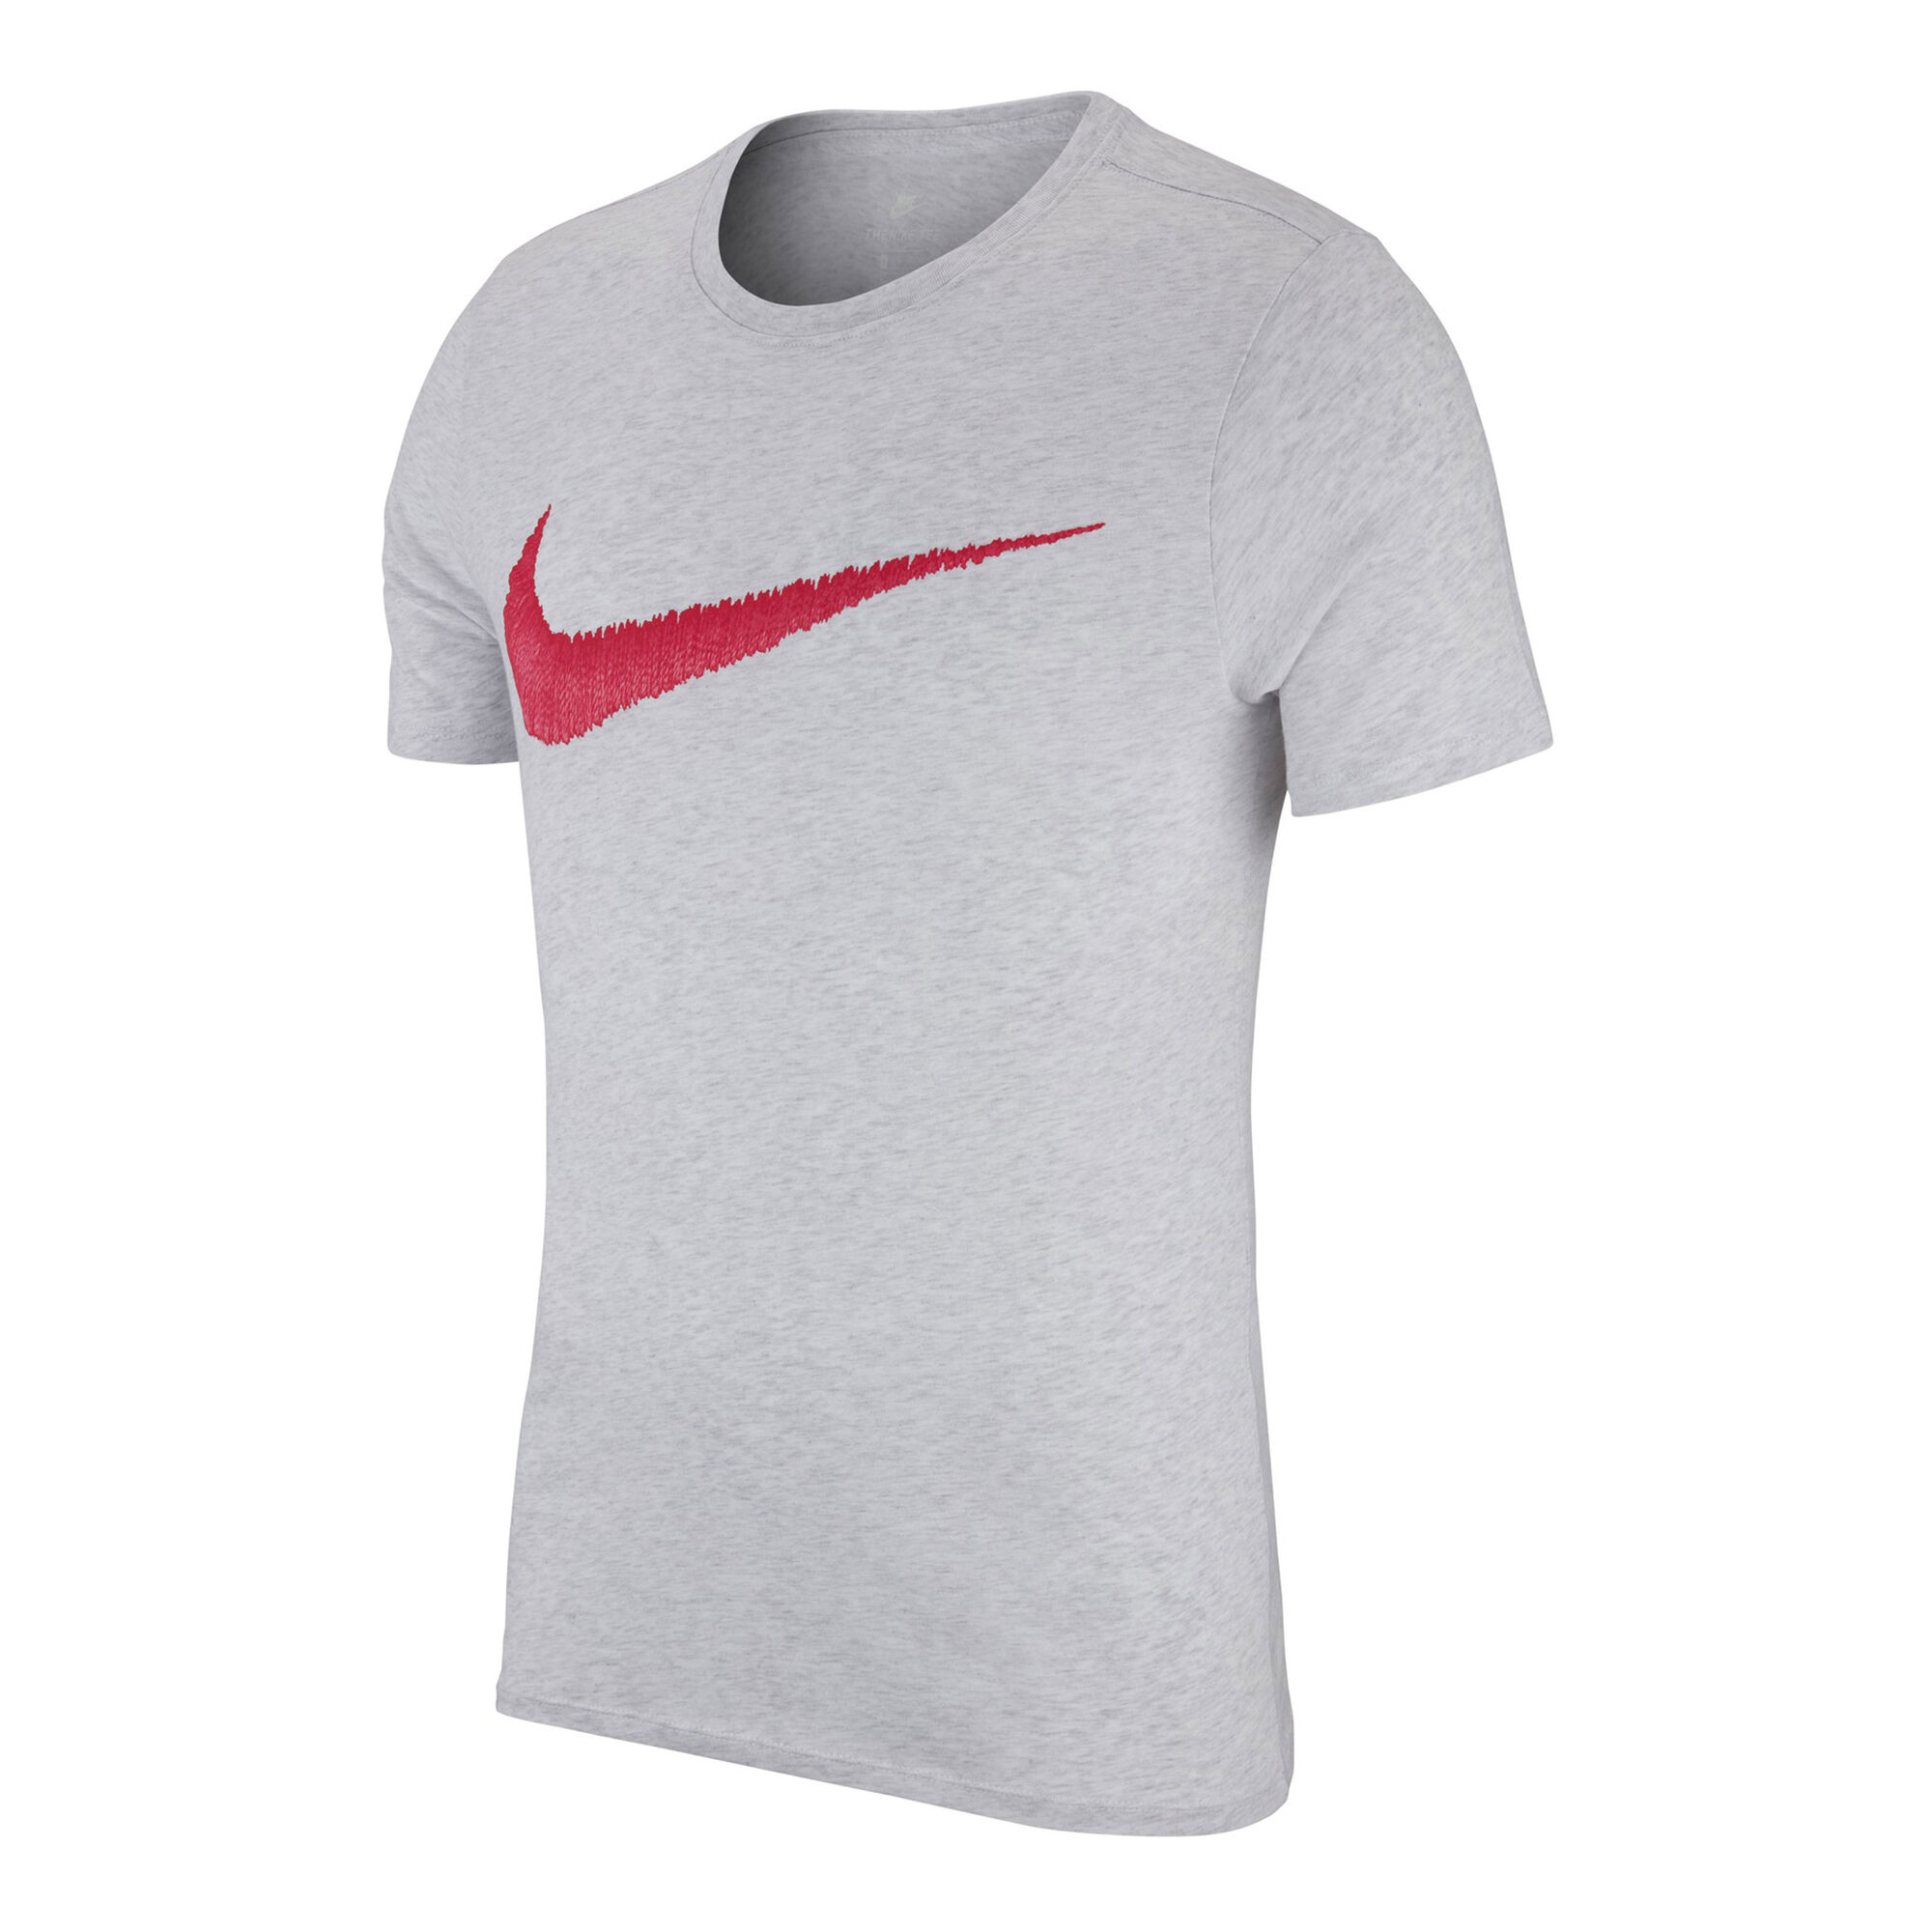 665c4f06 Nike Mens Hangtag Swoosh T Shirt – EDGE Engineering and Consulting ...